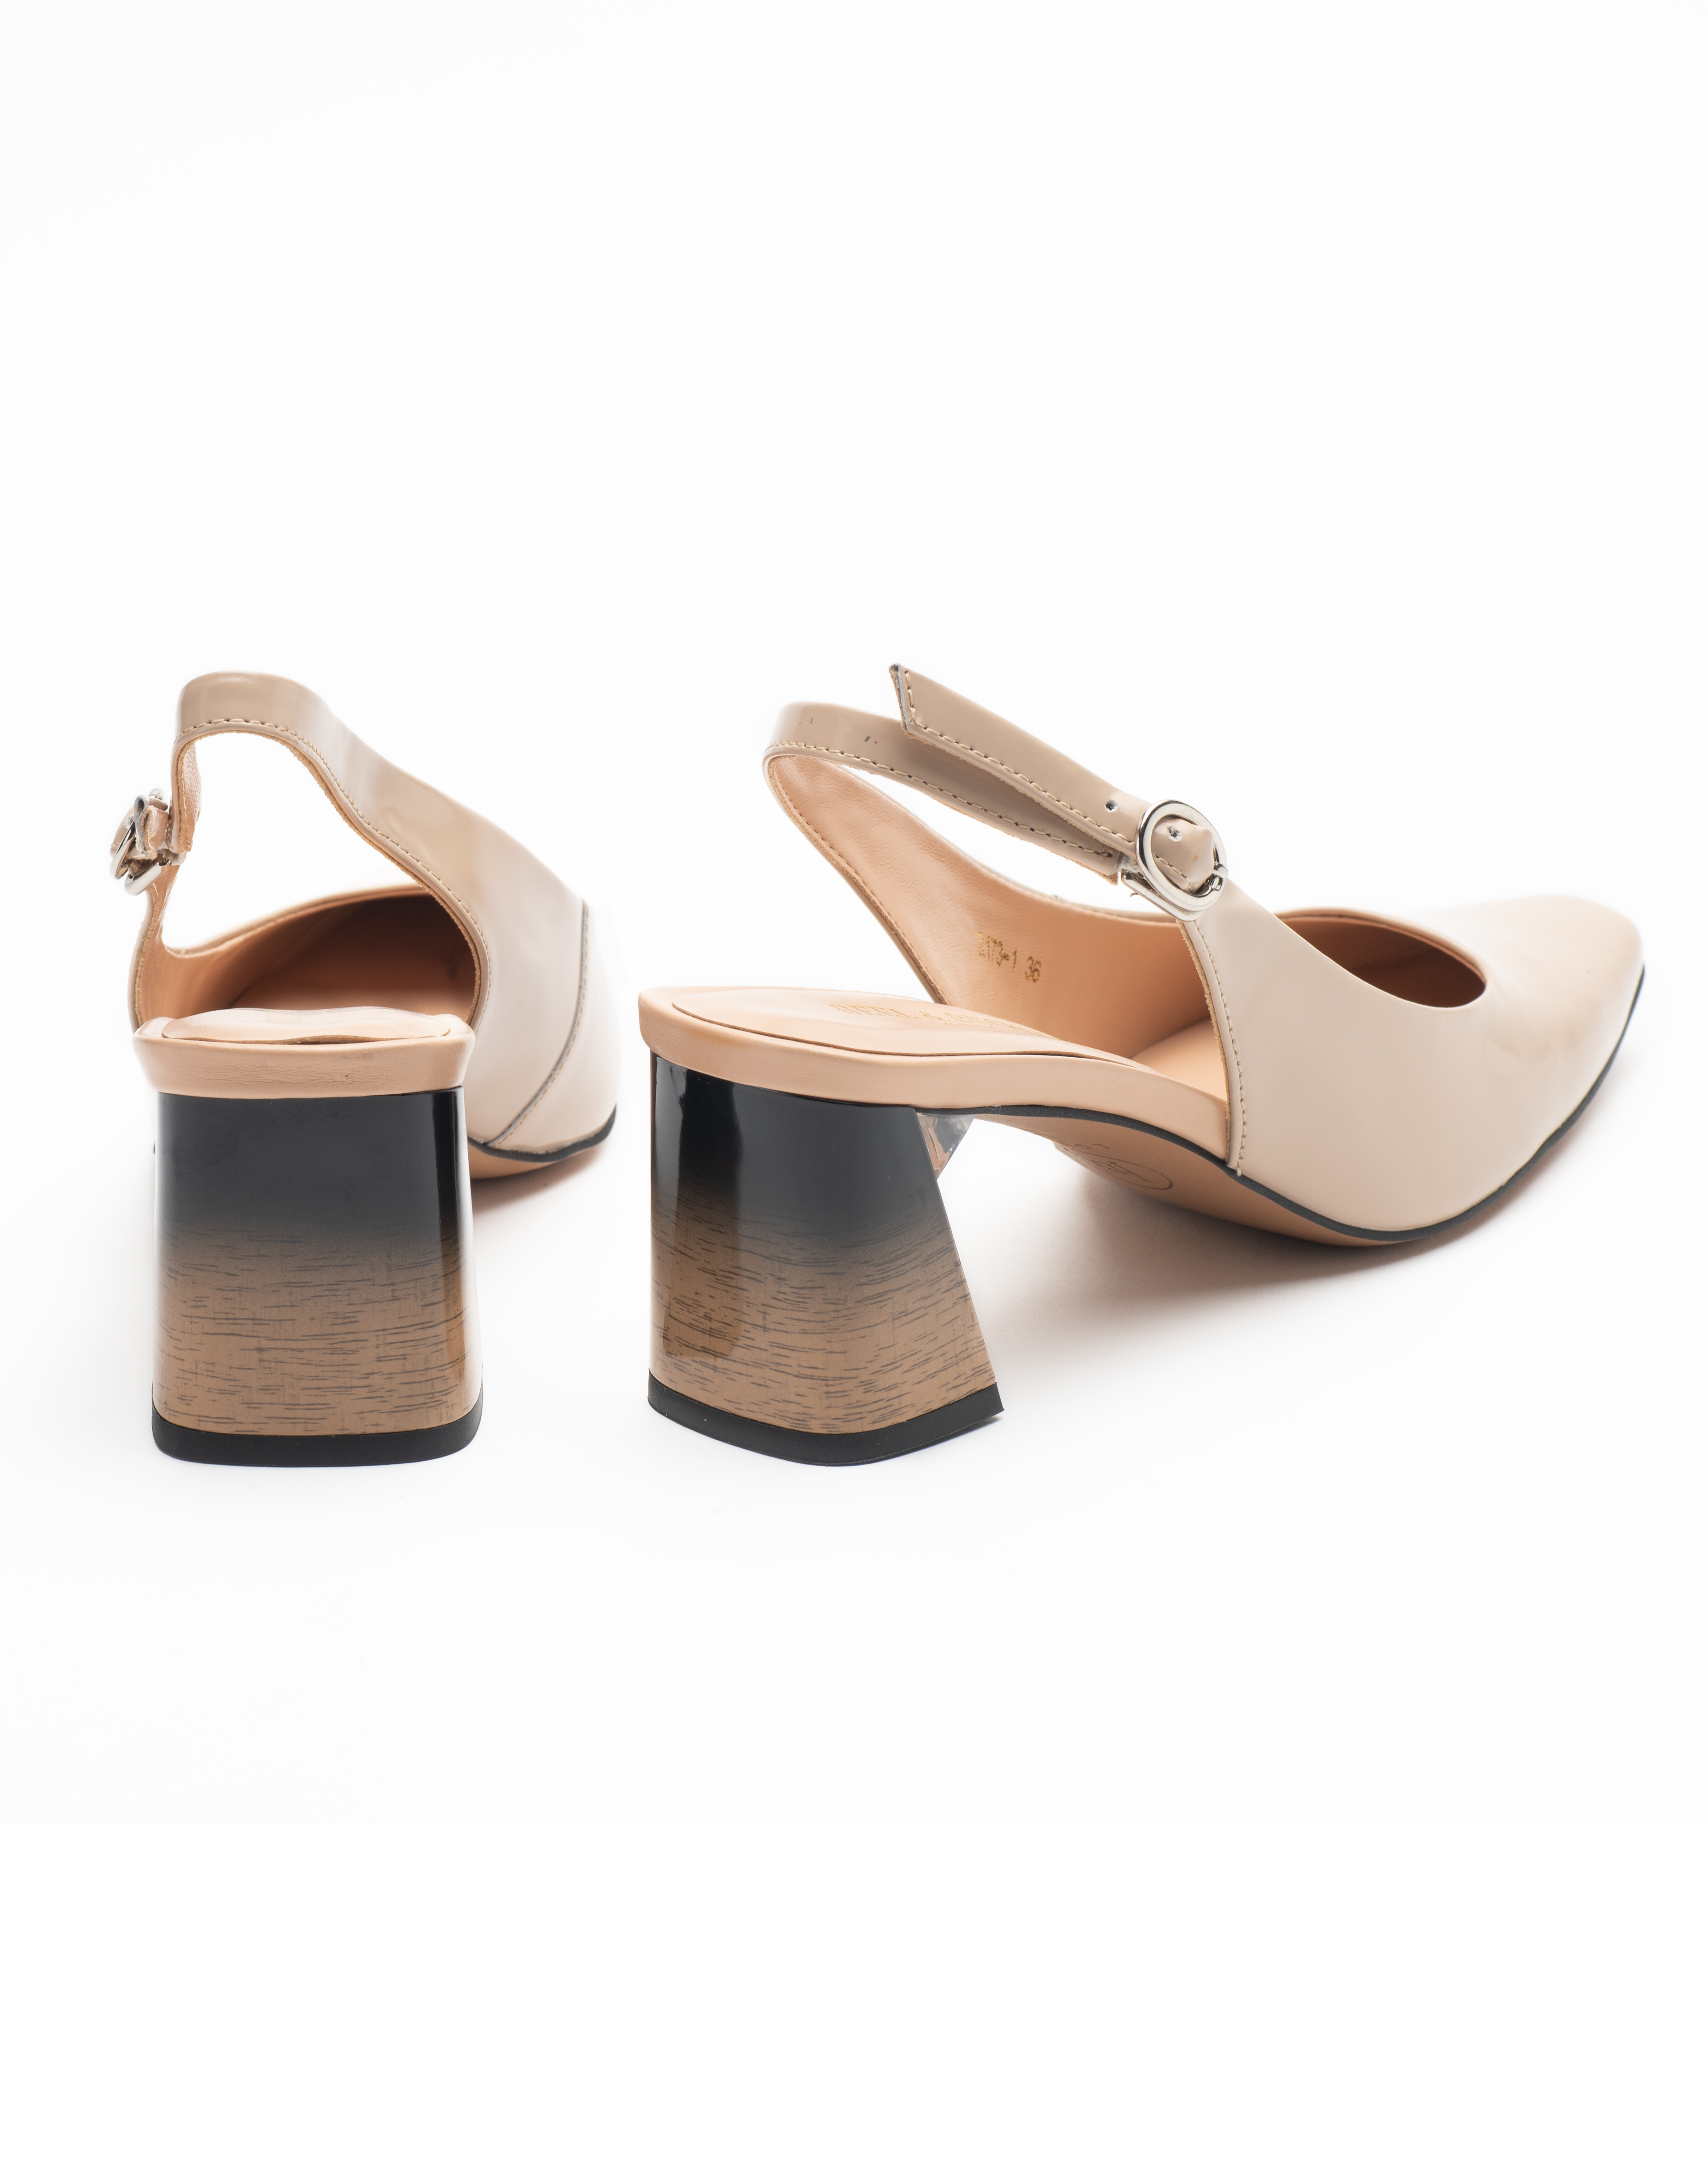 Heel _ Buckle London-Shoes-R173-1-Closed block heels-Tan-3